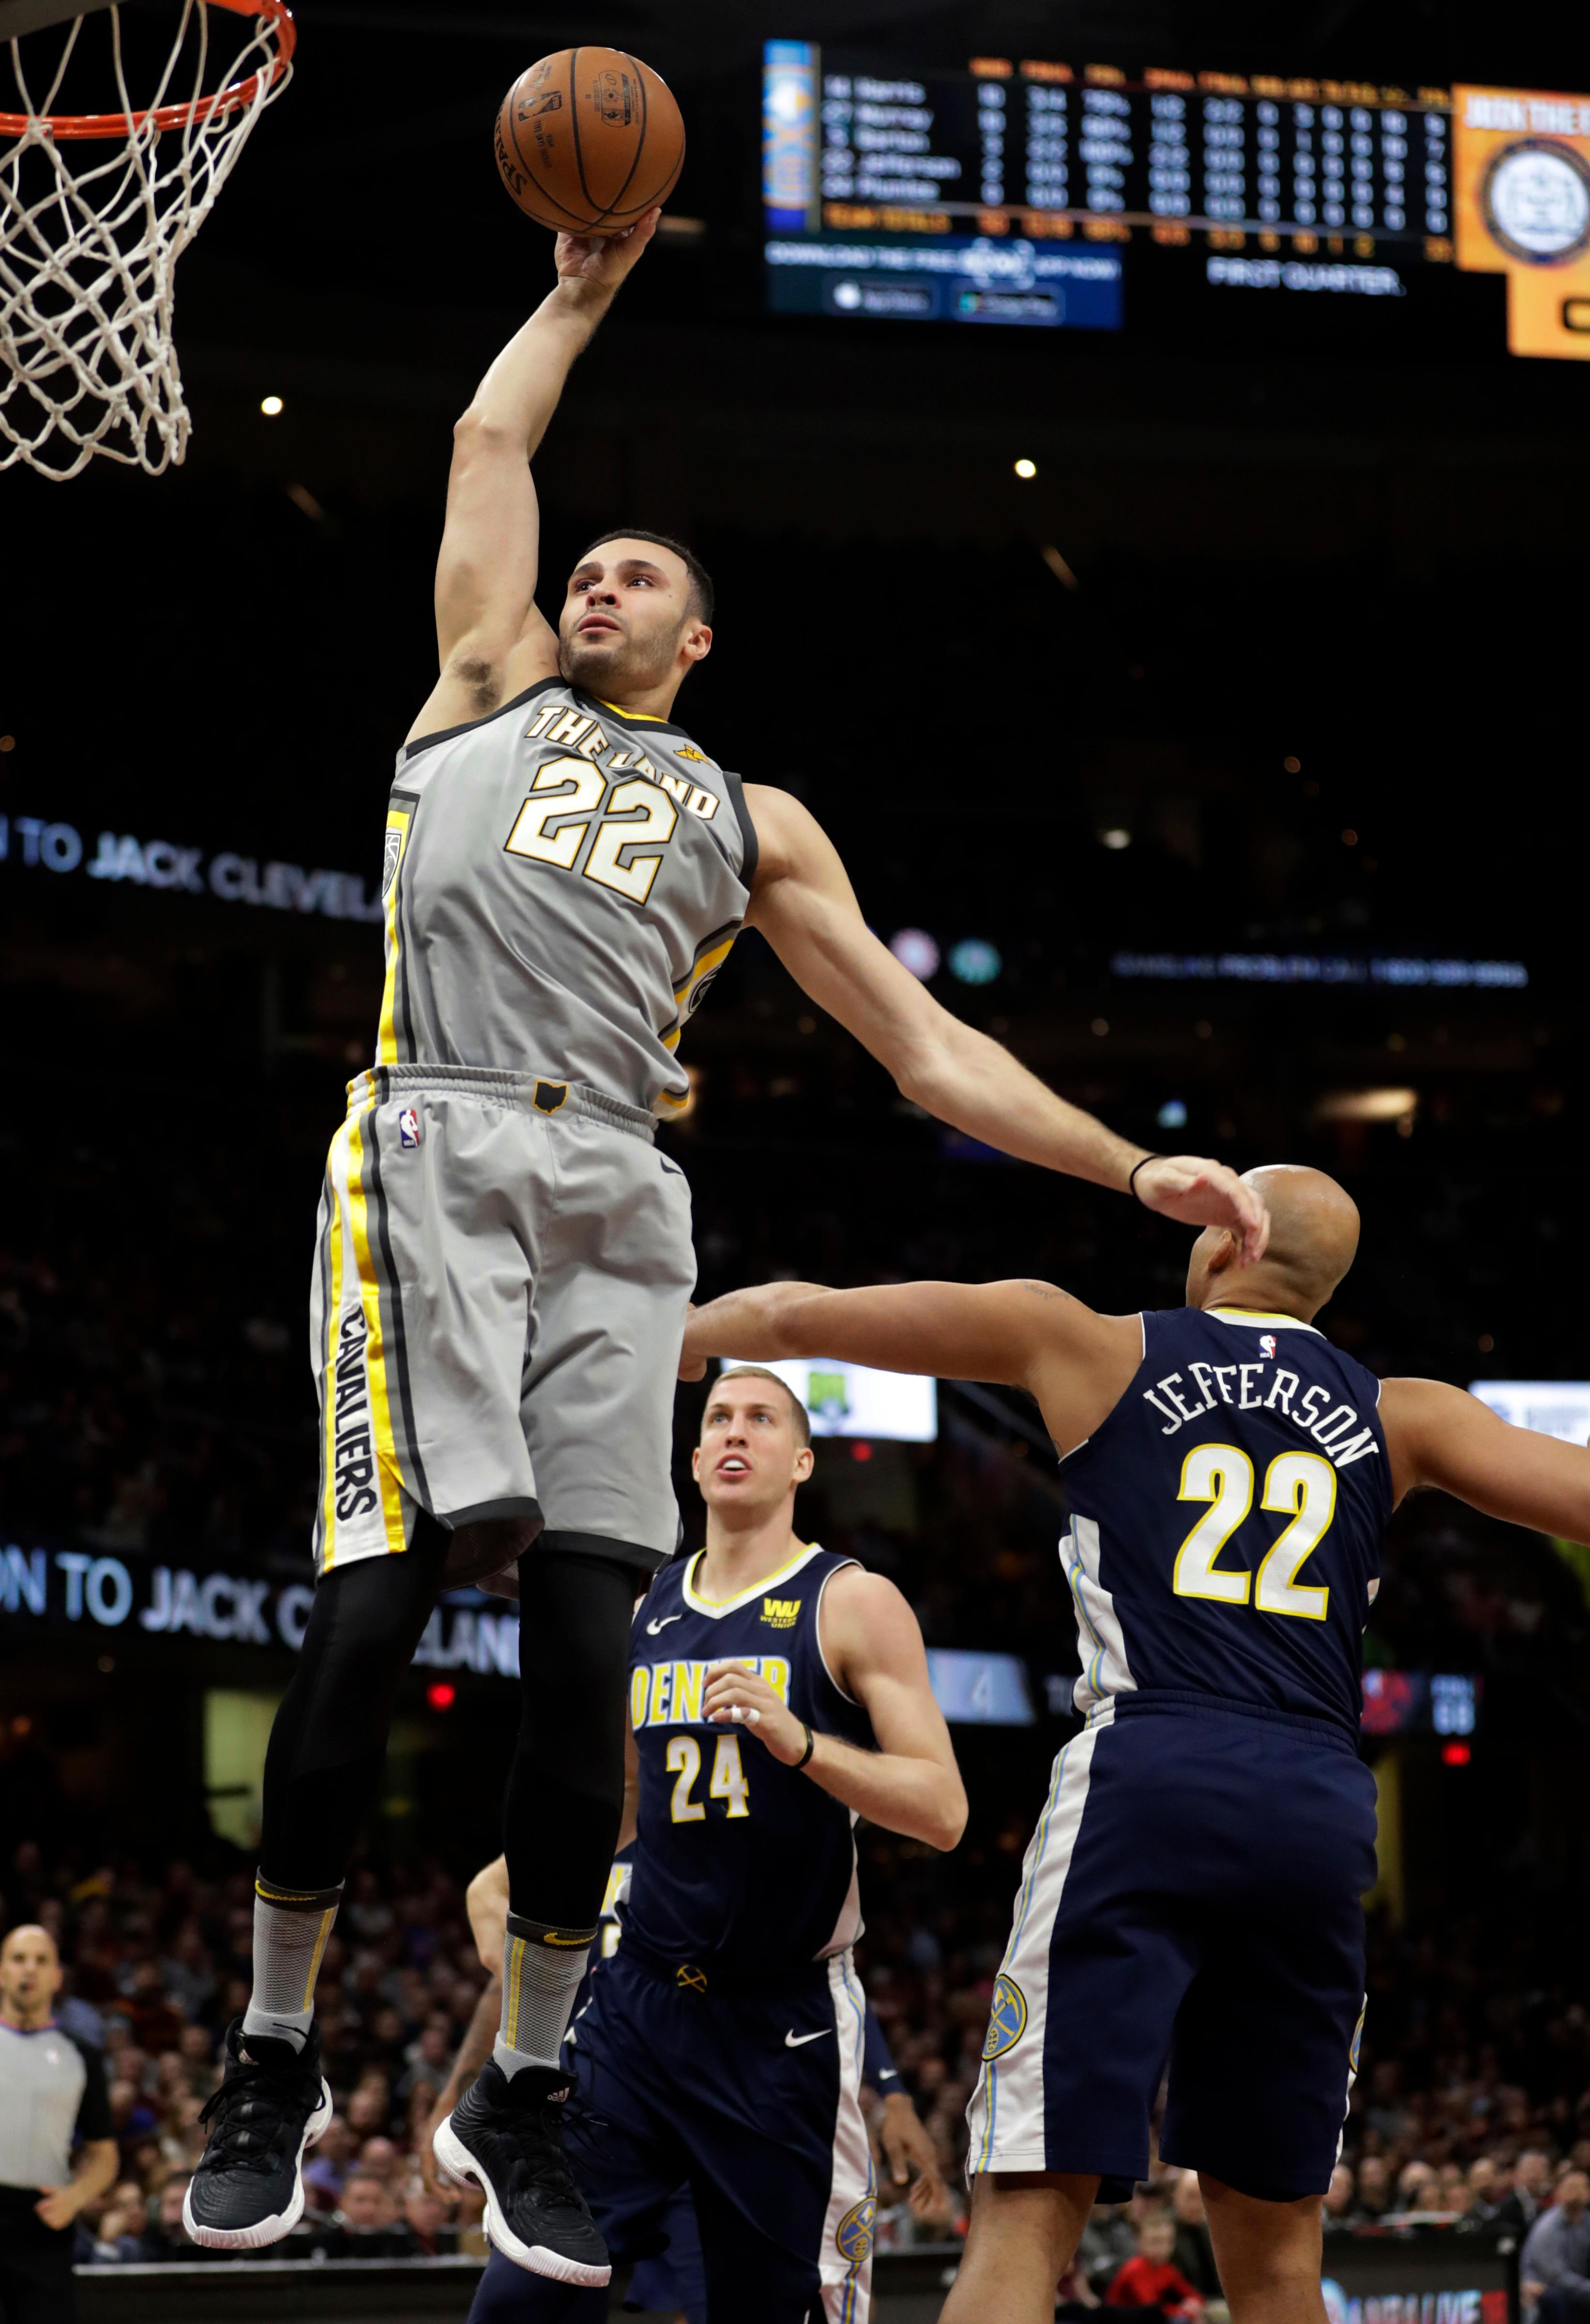 Cleveland Cavaliers' Larry Nance Jr. (22) dunks the ball against the Denver Nuggets in the first half of an NBA basketball game, Saturday, March 3, 2018, in Cleveland. (AP Photo/Tony Dejak)